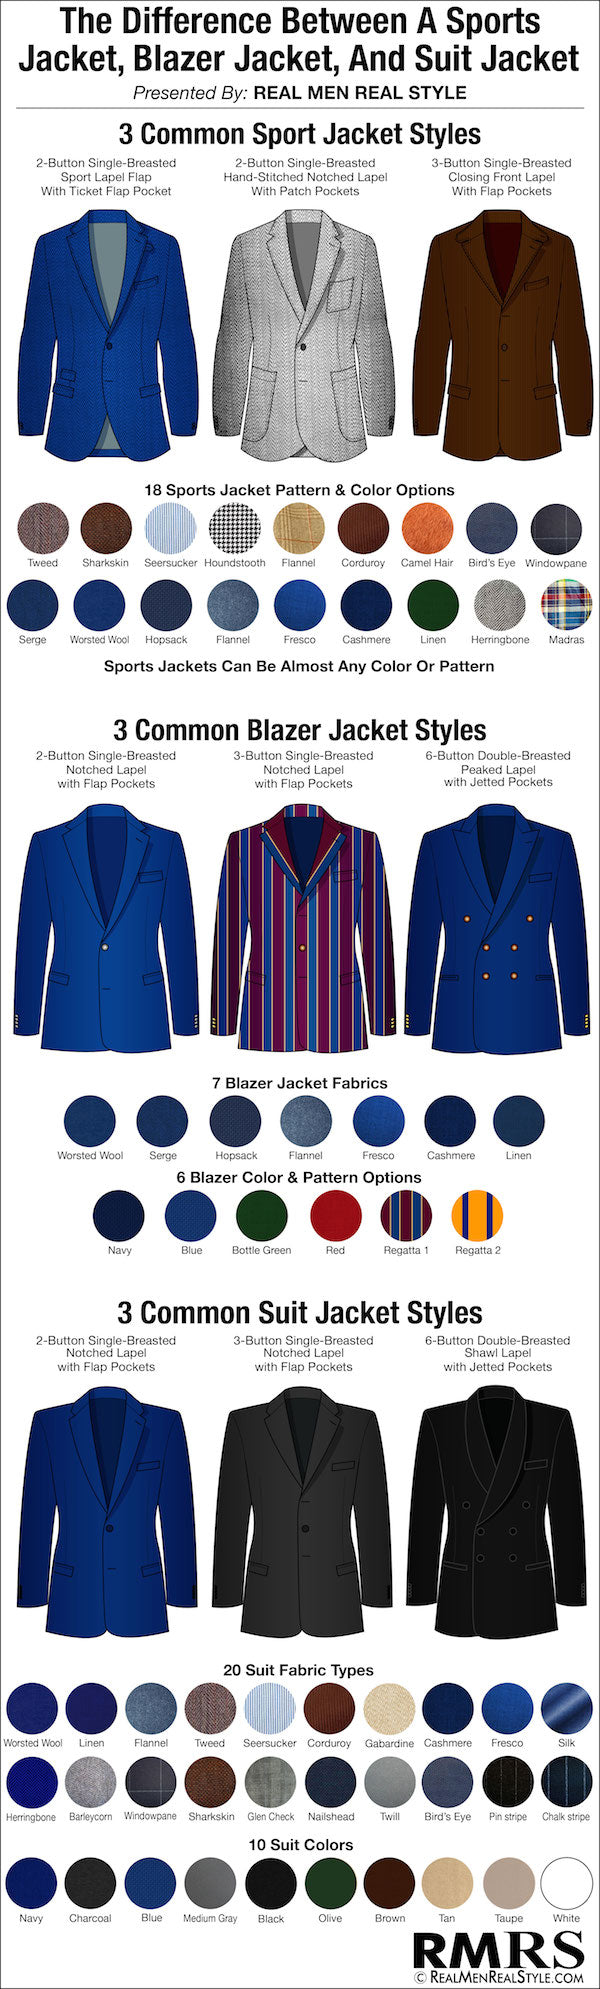 5. Difference Between A Suit Jacket, Blazer Jacket & A Sprot Jacket